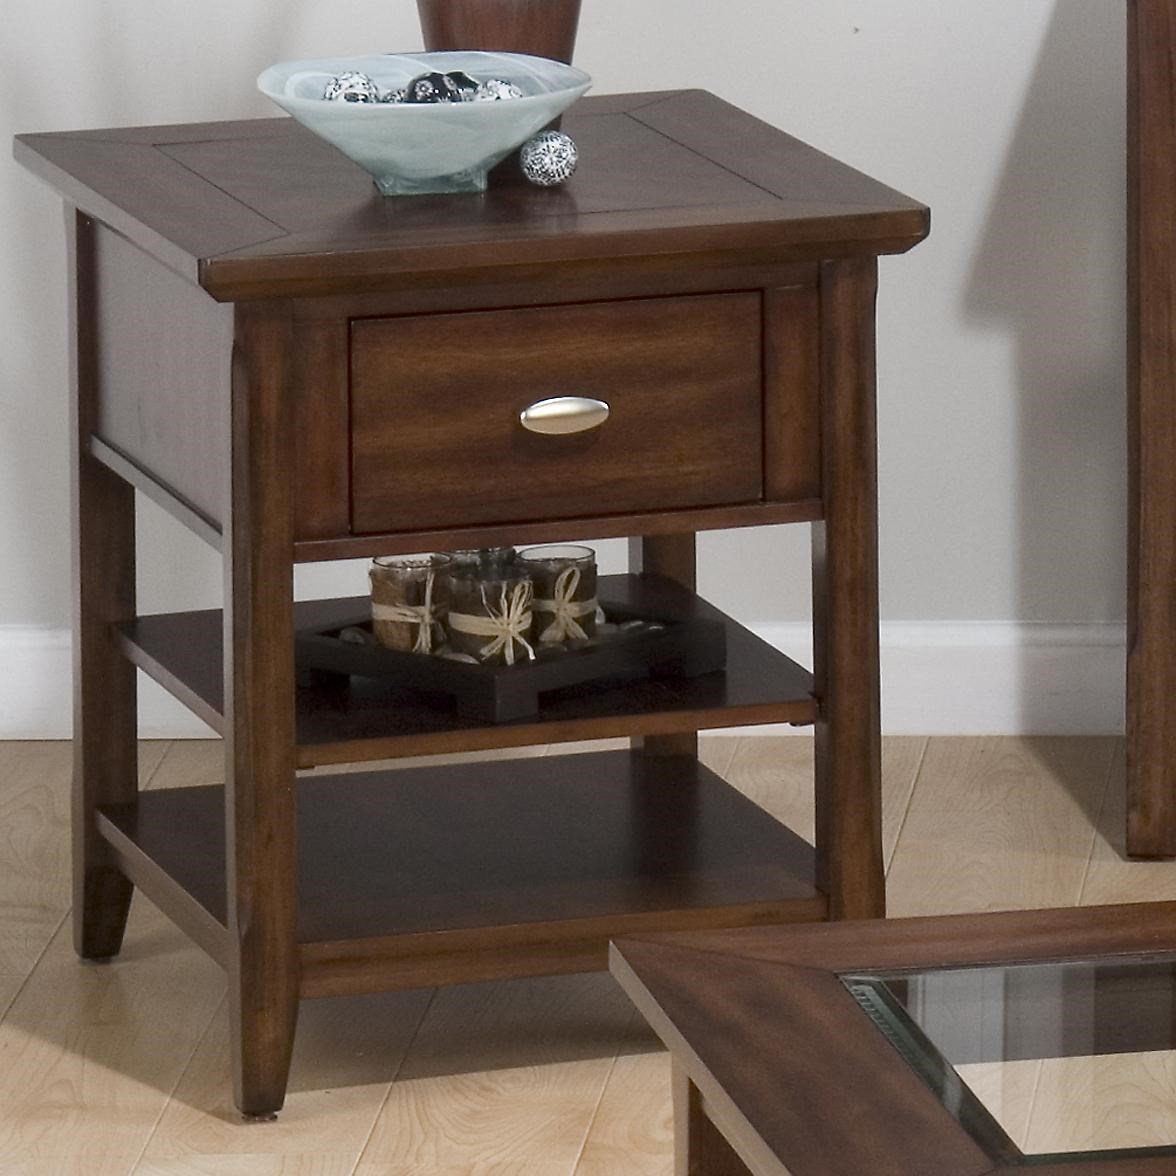 Attirant Jofran Bellingham Brown End Table W/ Drawer U0026 2 Shelves